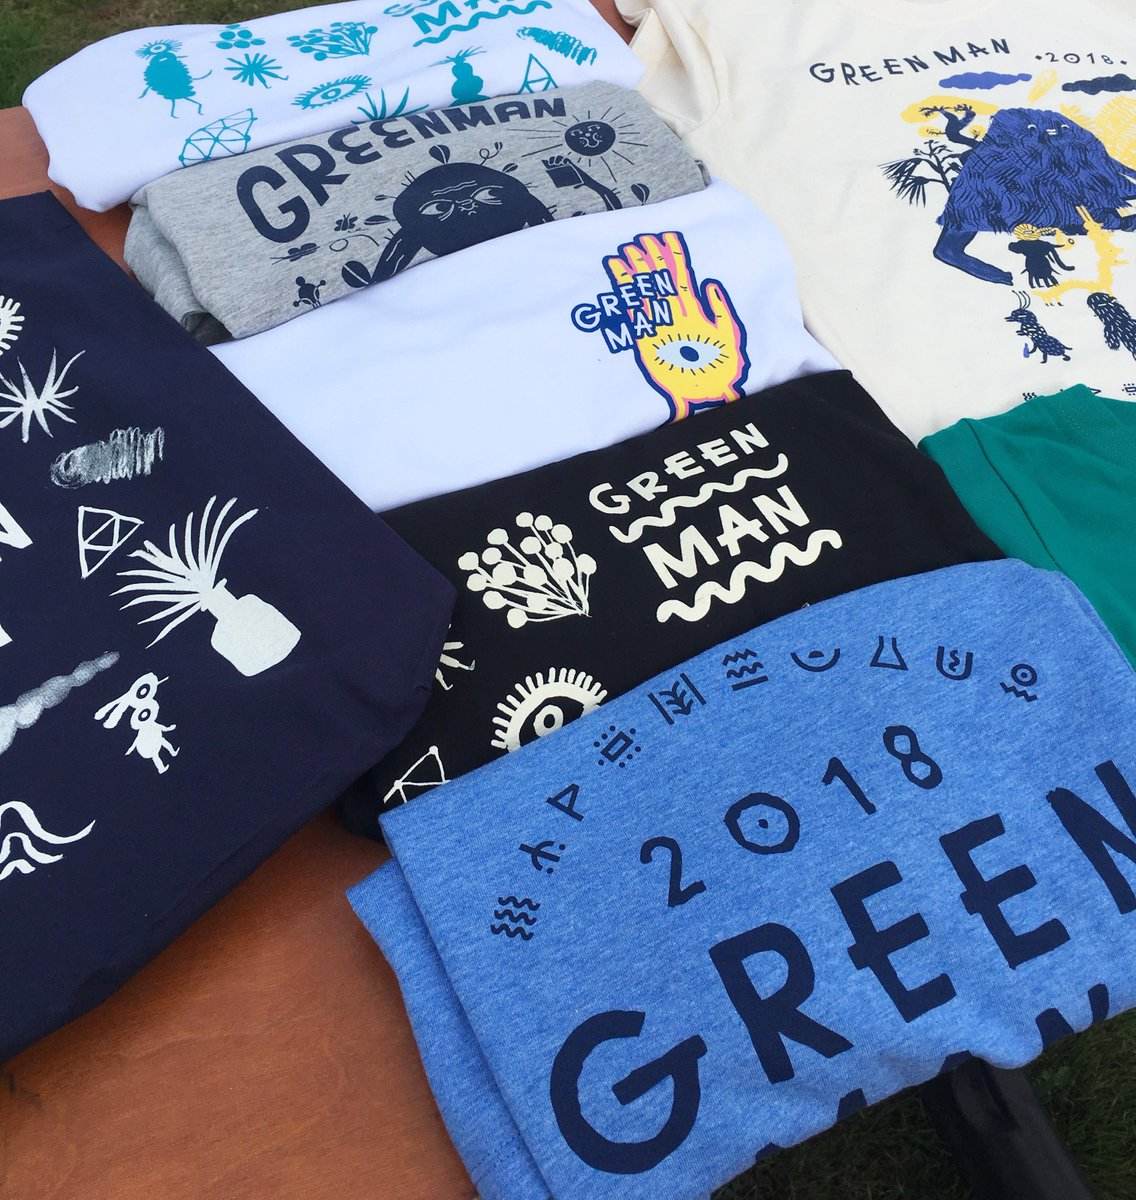 RT @GreenManFest: Tees, totes, patches & more! Swing by the merch store for Green Man garms a plenty ???????? https://t.co/UChHcFUnXD